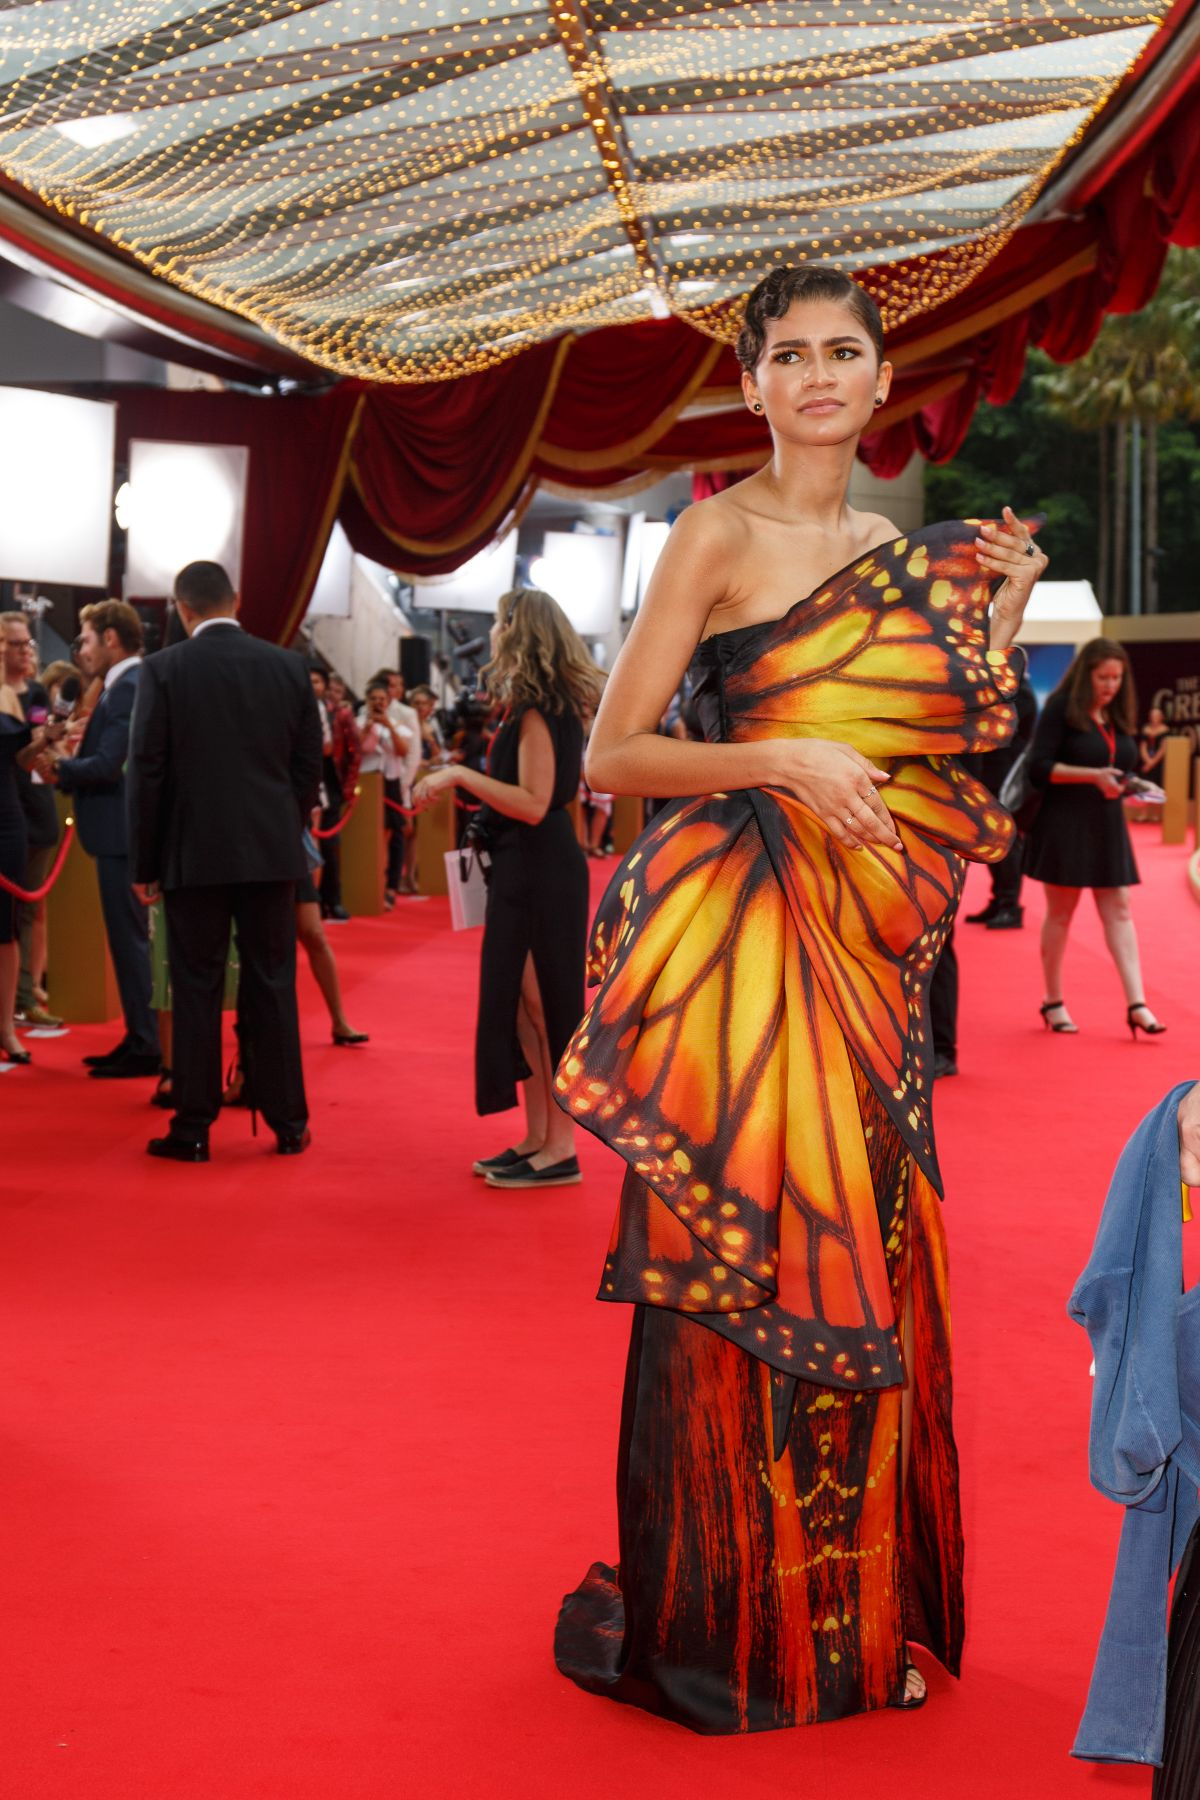 zendaya coleman at the greatest showman premiere in sydney